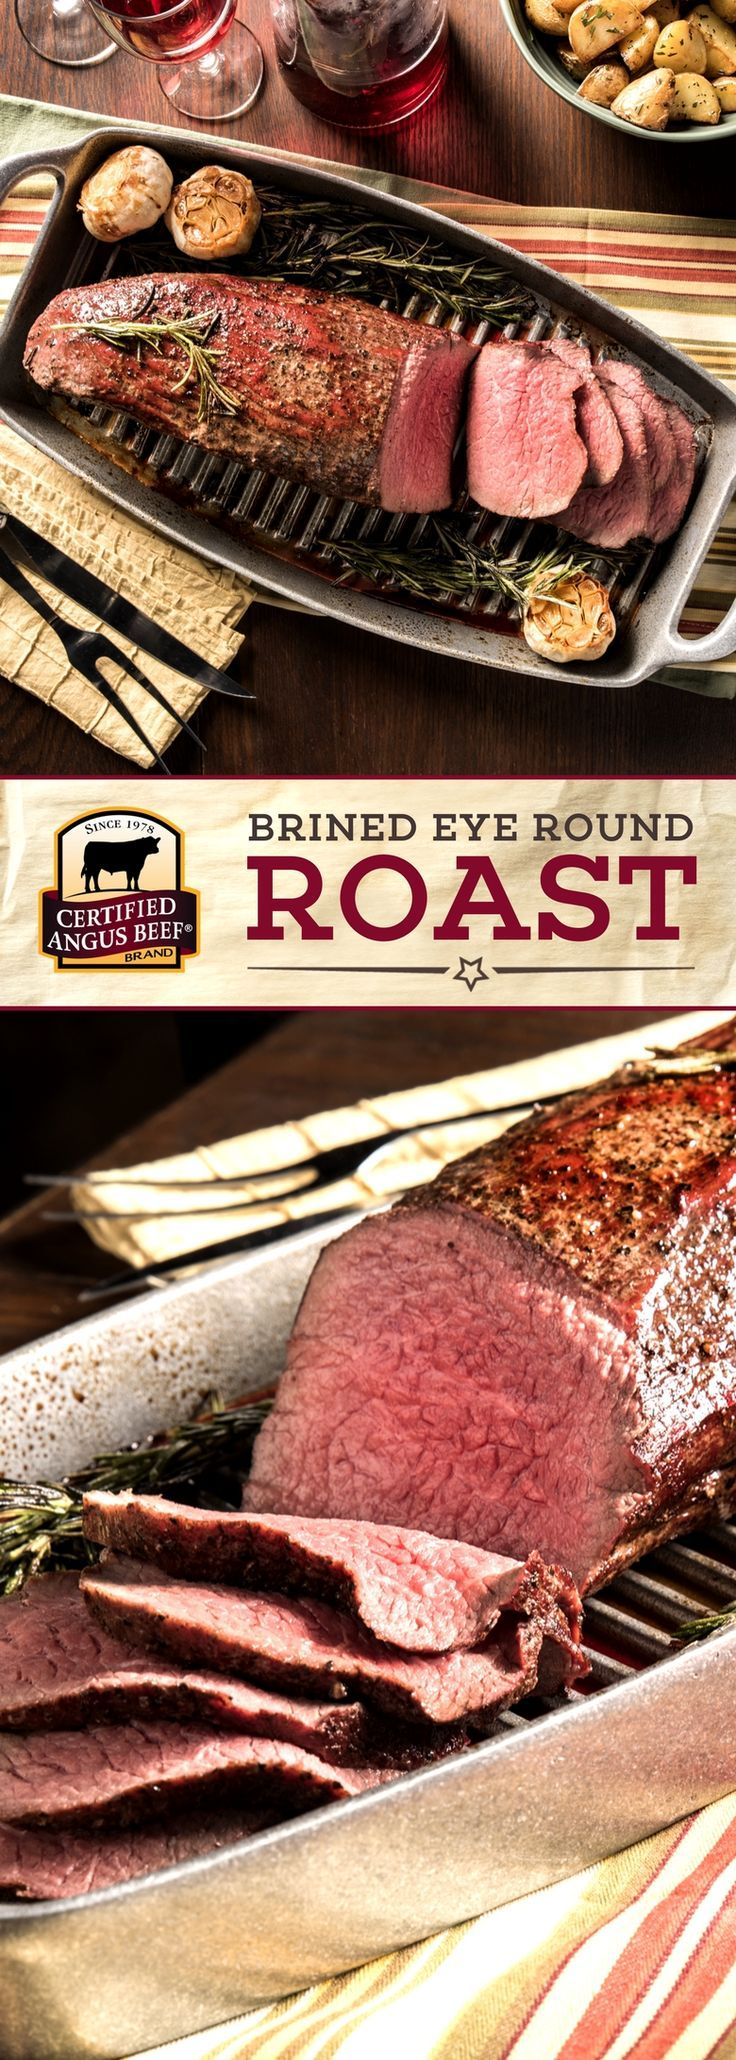 Certified Angus Beef®️️️️️️️️️️️️️️️️ brand Brined Eye of Round is an IMPRESSIVE roast on a budget! The secret is in the brine. It helps flavor the beef as well as tenderize. Our special holiday brine imparts classic Christmas flavors, but we enjoy this economical roast year round! Use our FREE Roast Perfect App for successful roasting EVERY TIME! #bestangusbeef #certifiedangusbeef #roastperfect #roastrecipe #beefrecipe #budgetfriendly